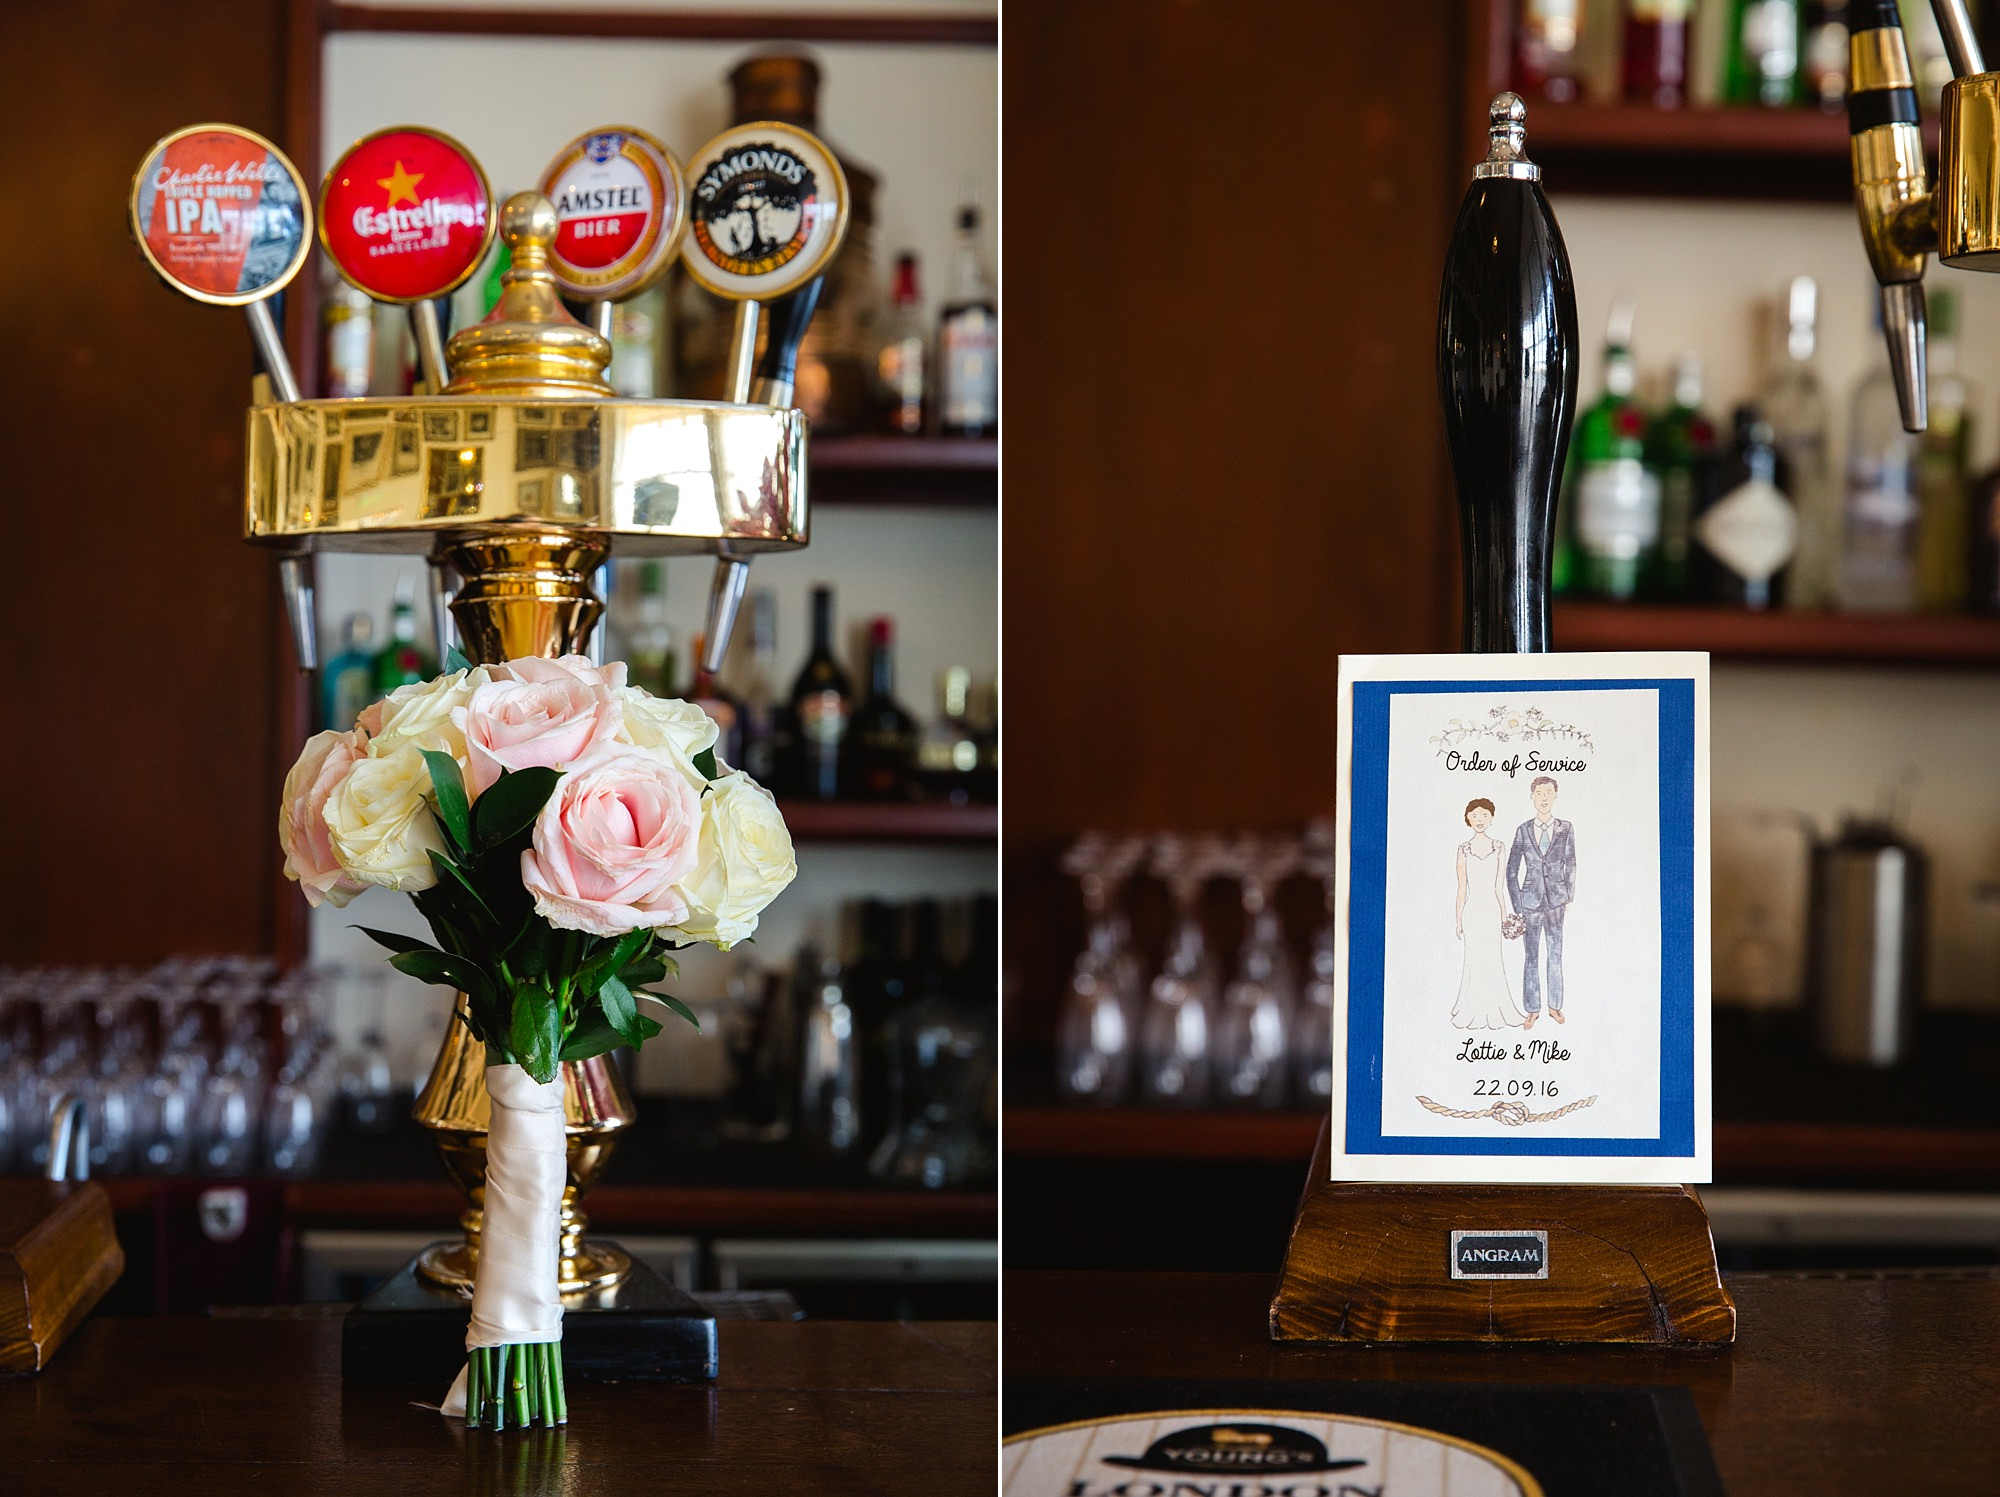 Trafalgar Tavern wedding bouquet and invitation details